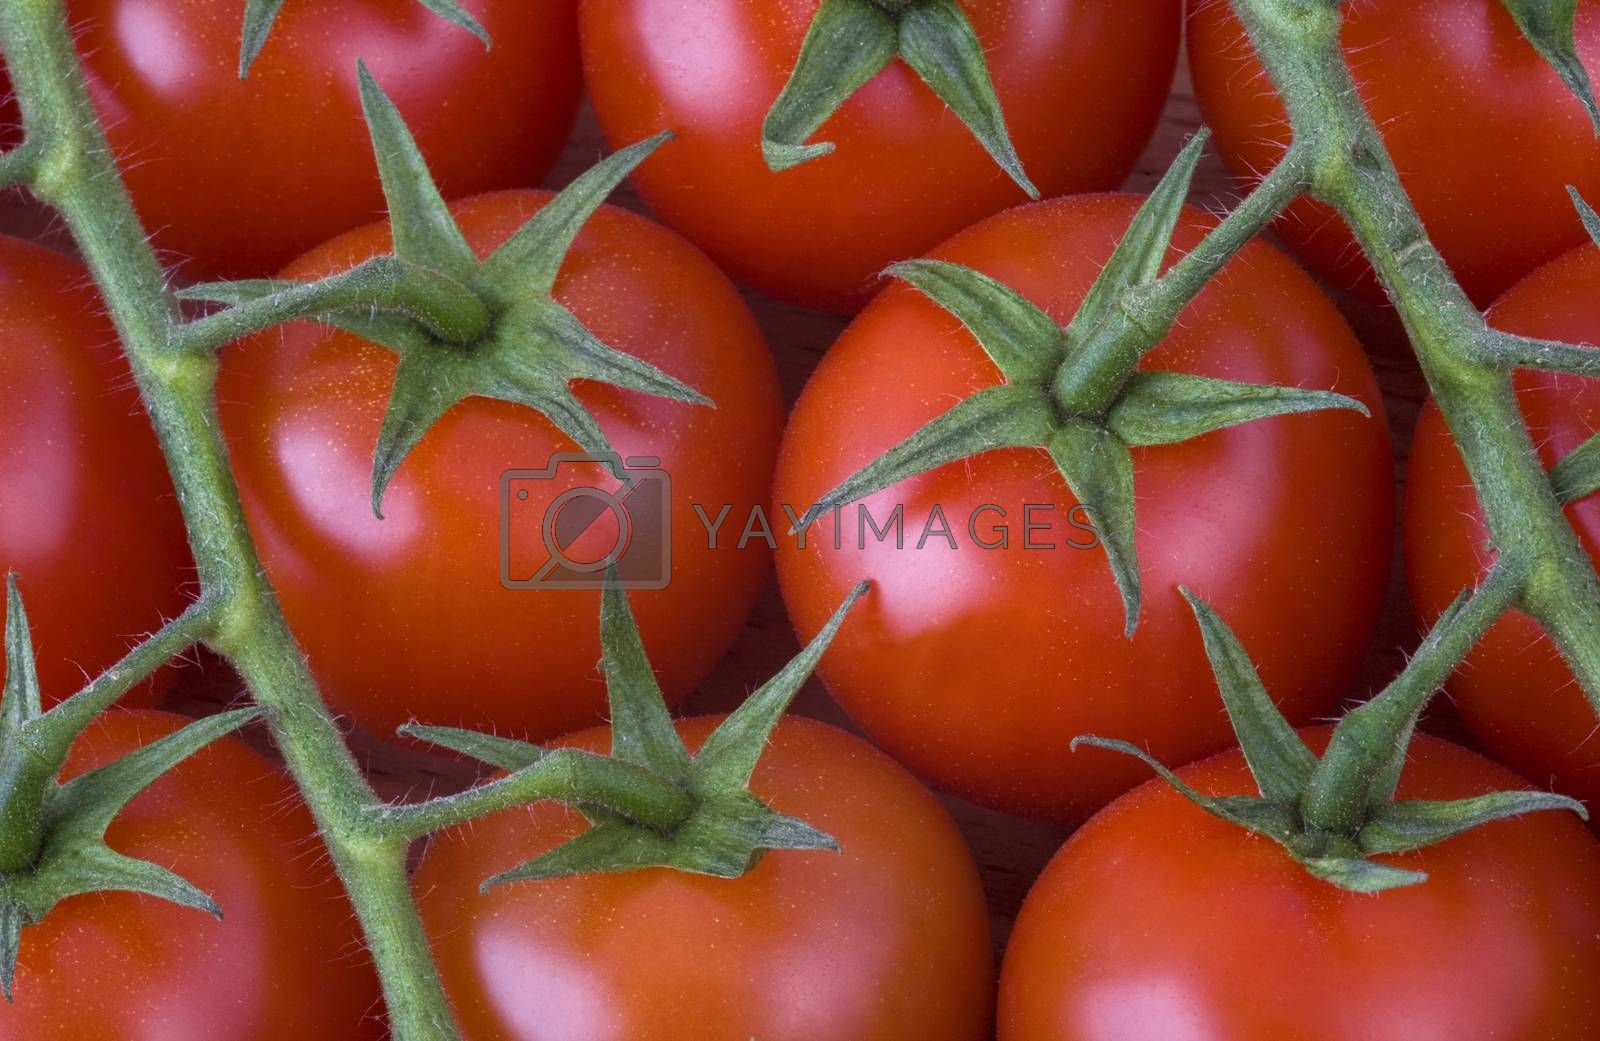 Royalty free image of red cherry tomatoes on the vine by phortcach